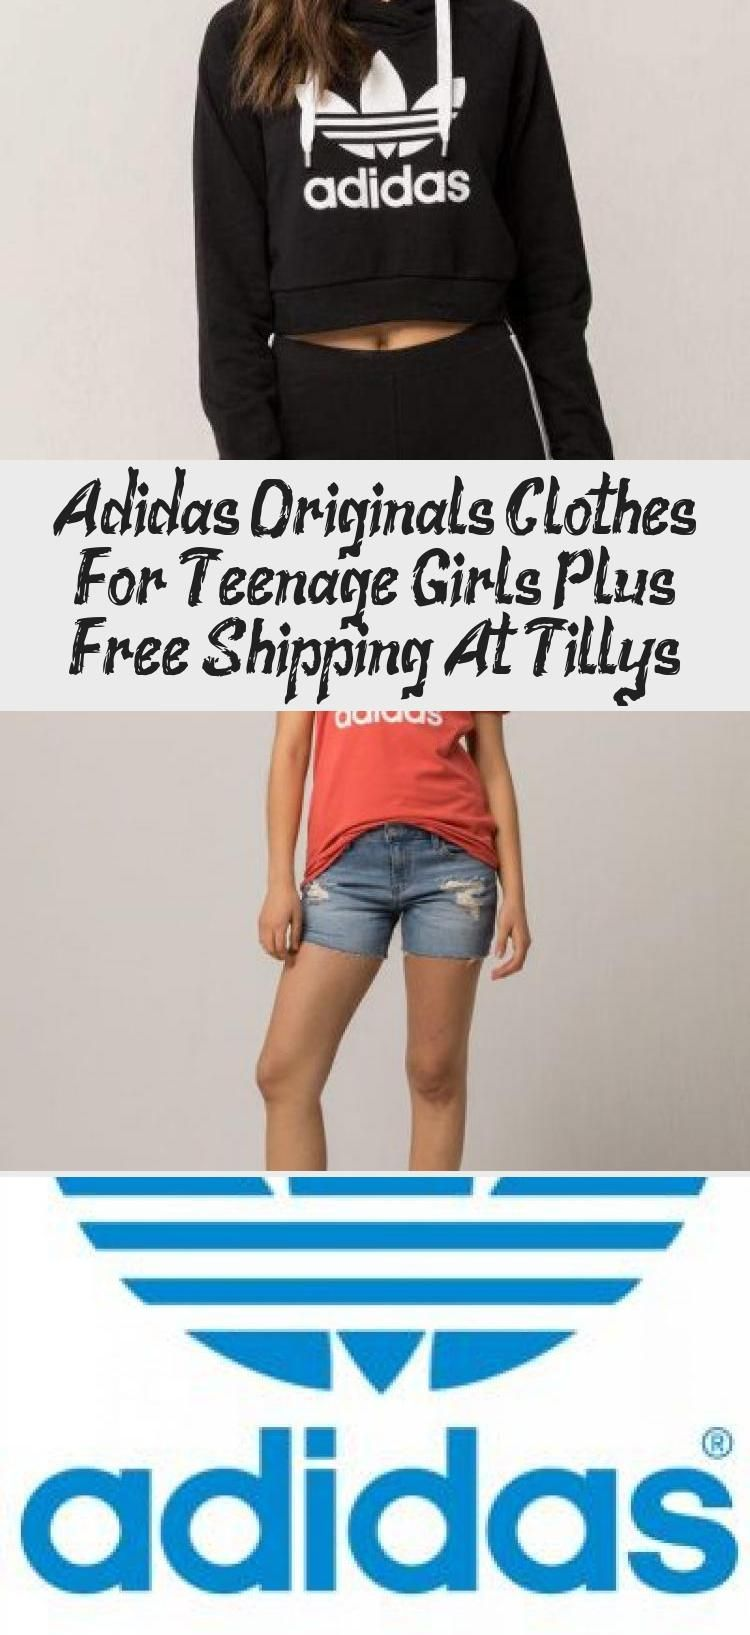 adidas originals cloths for girl